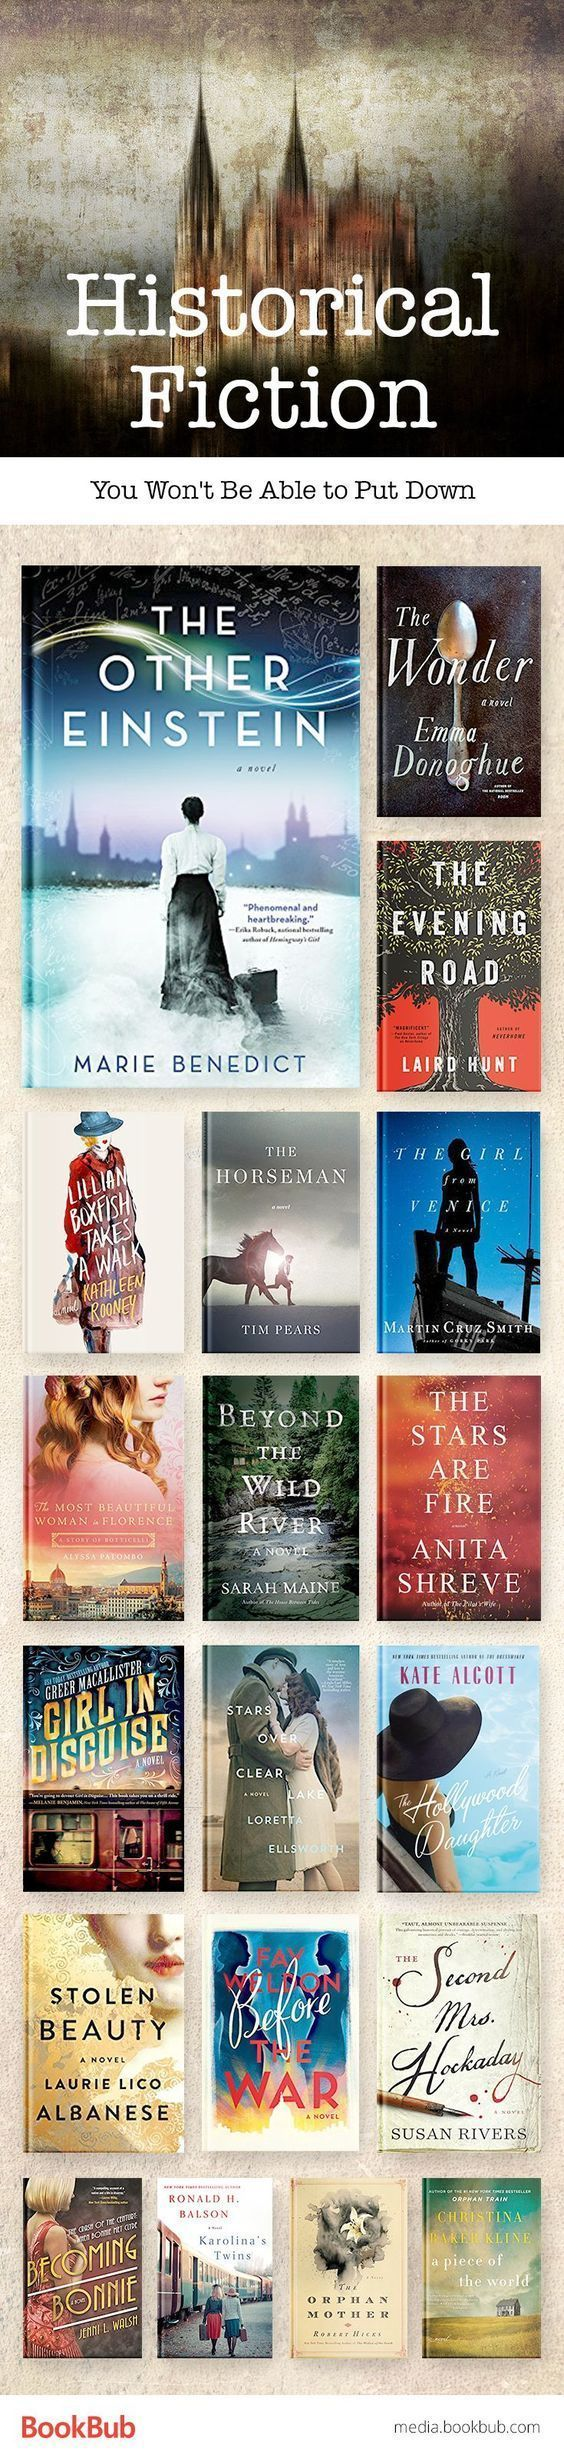 2017 Great historical fiction books you won't be able to put down. If you love history novels, this reading list is for you.